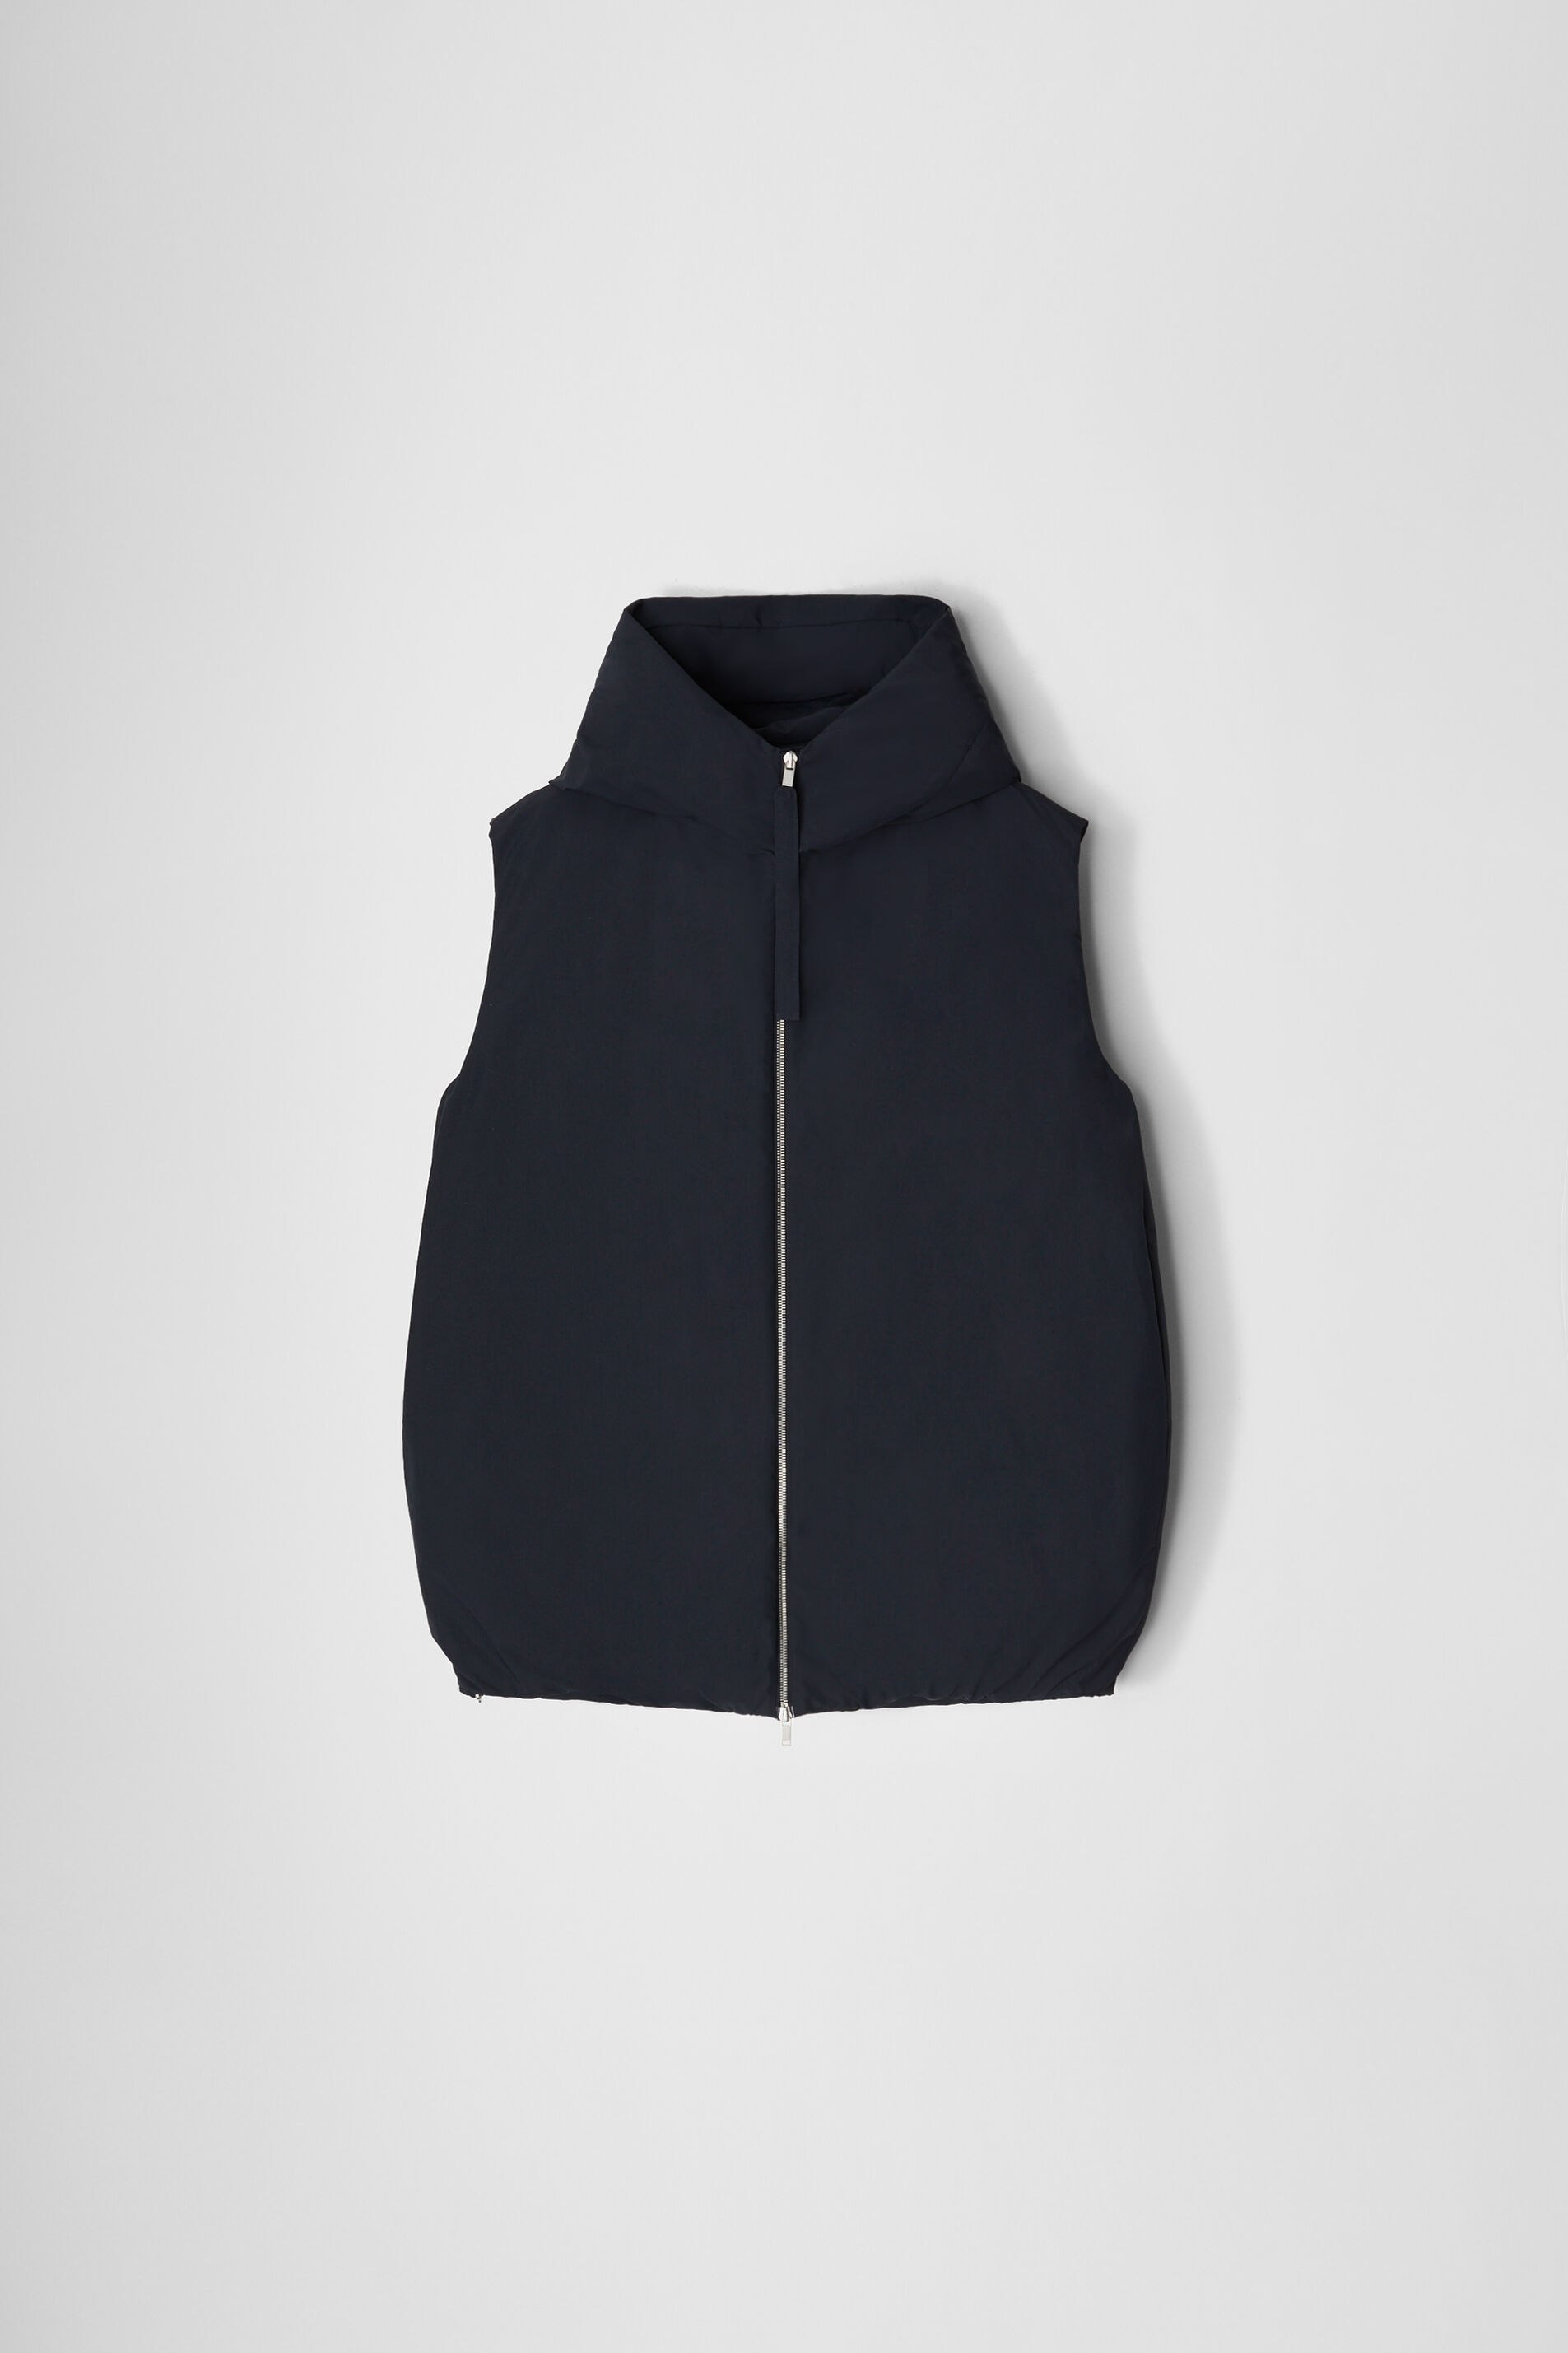 Down Gilet, dark blue, large